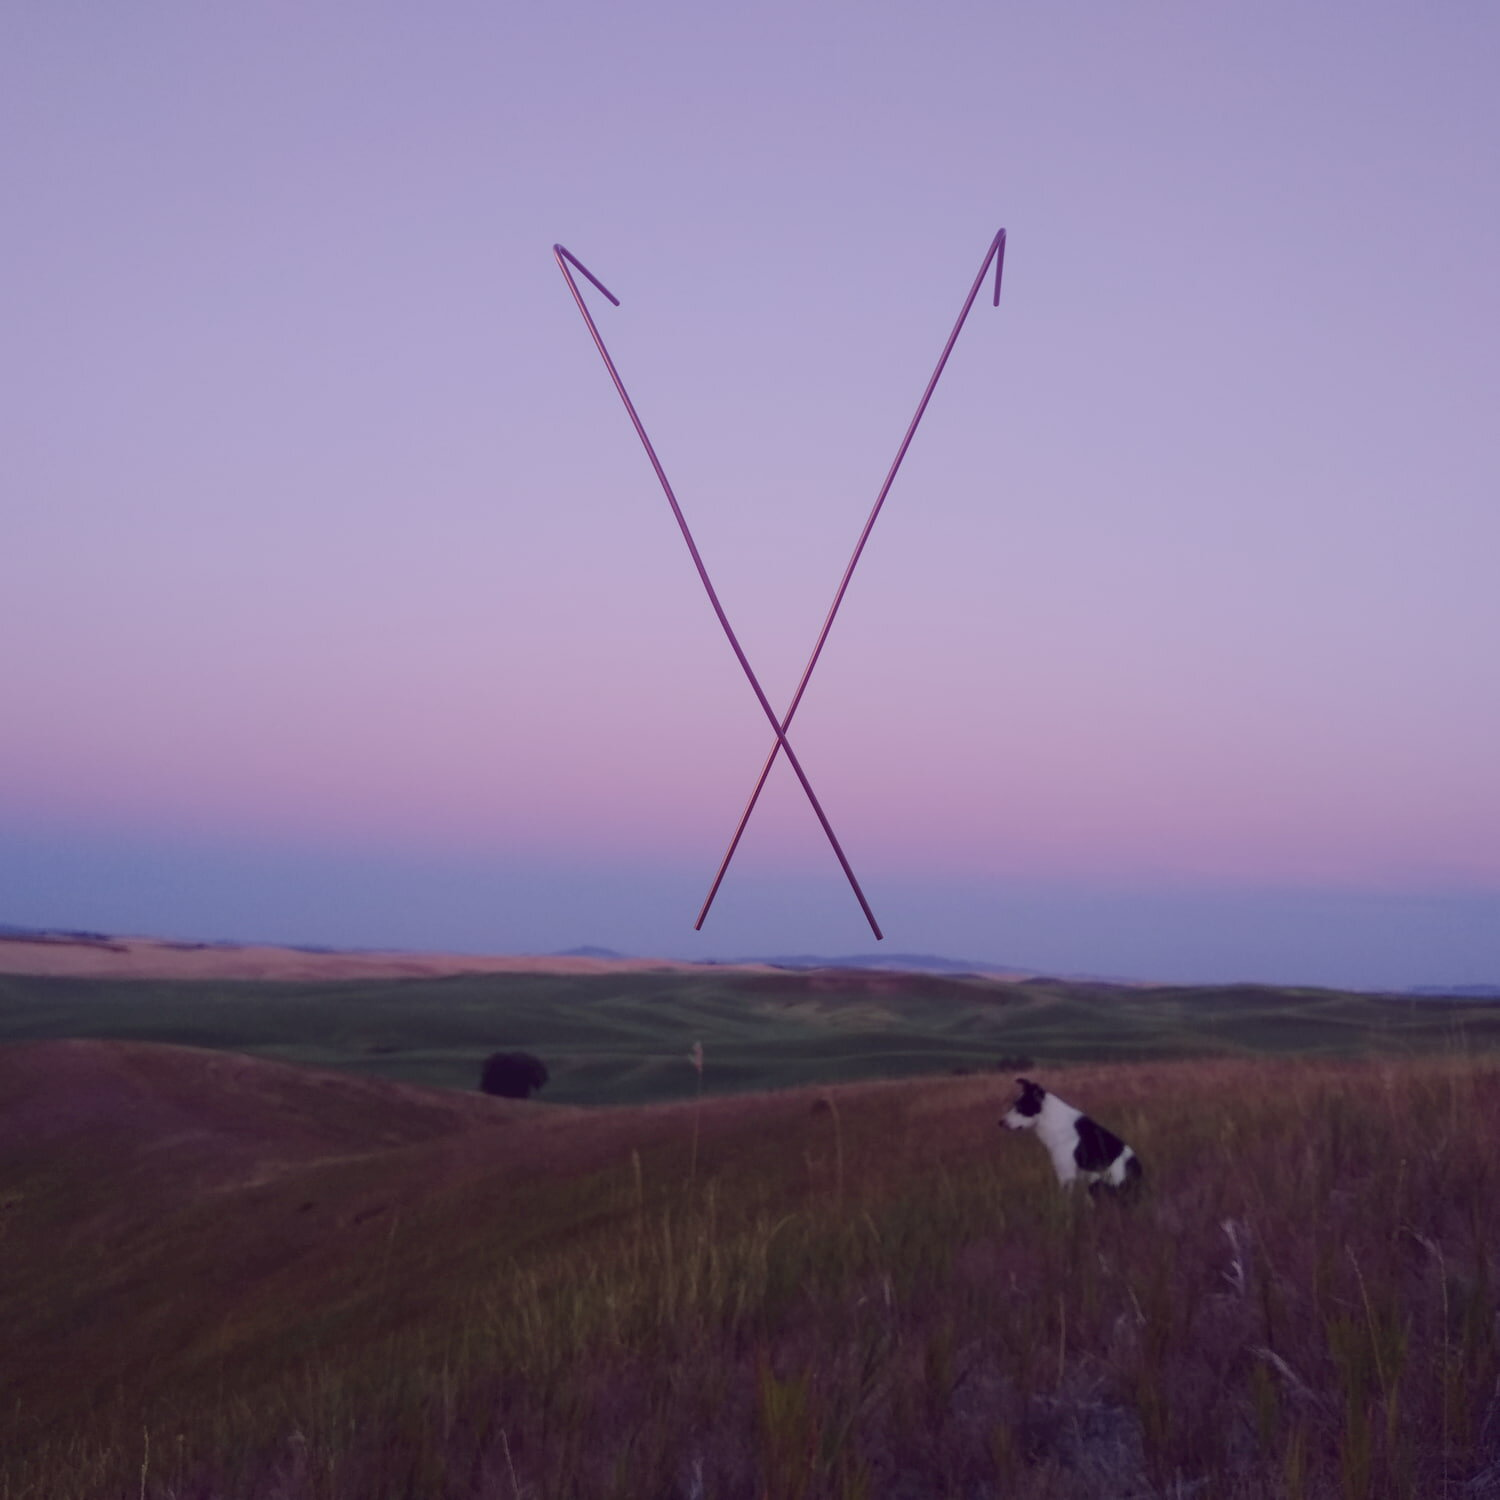 Smoot Hill, with 3D replicas of Kathy Emtman's witching rods superimposed